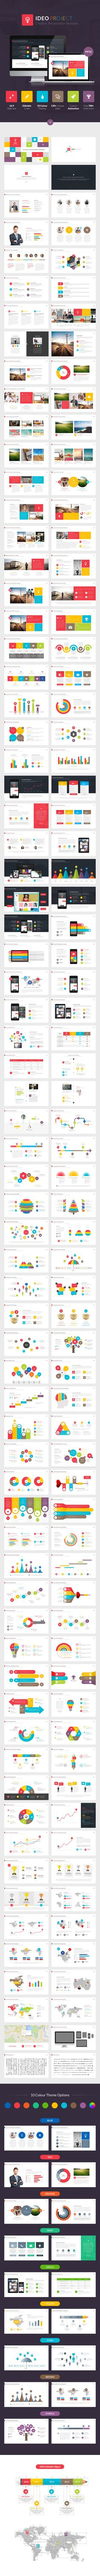 Ideo Powerpoint Presentation Template (Powerpoint Templates)